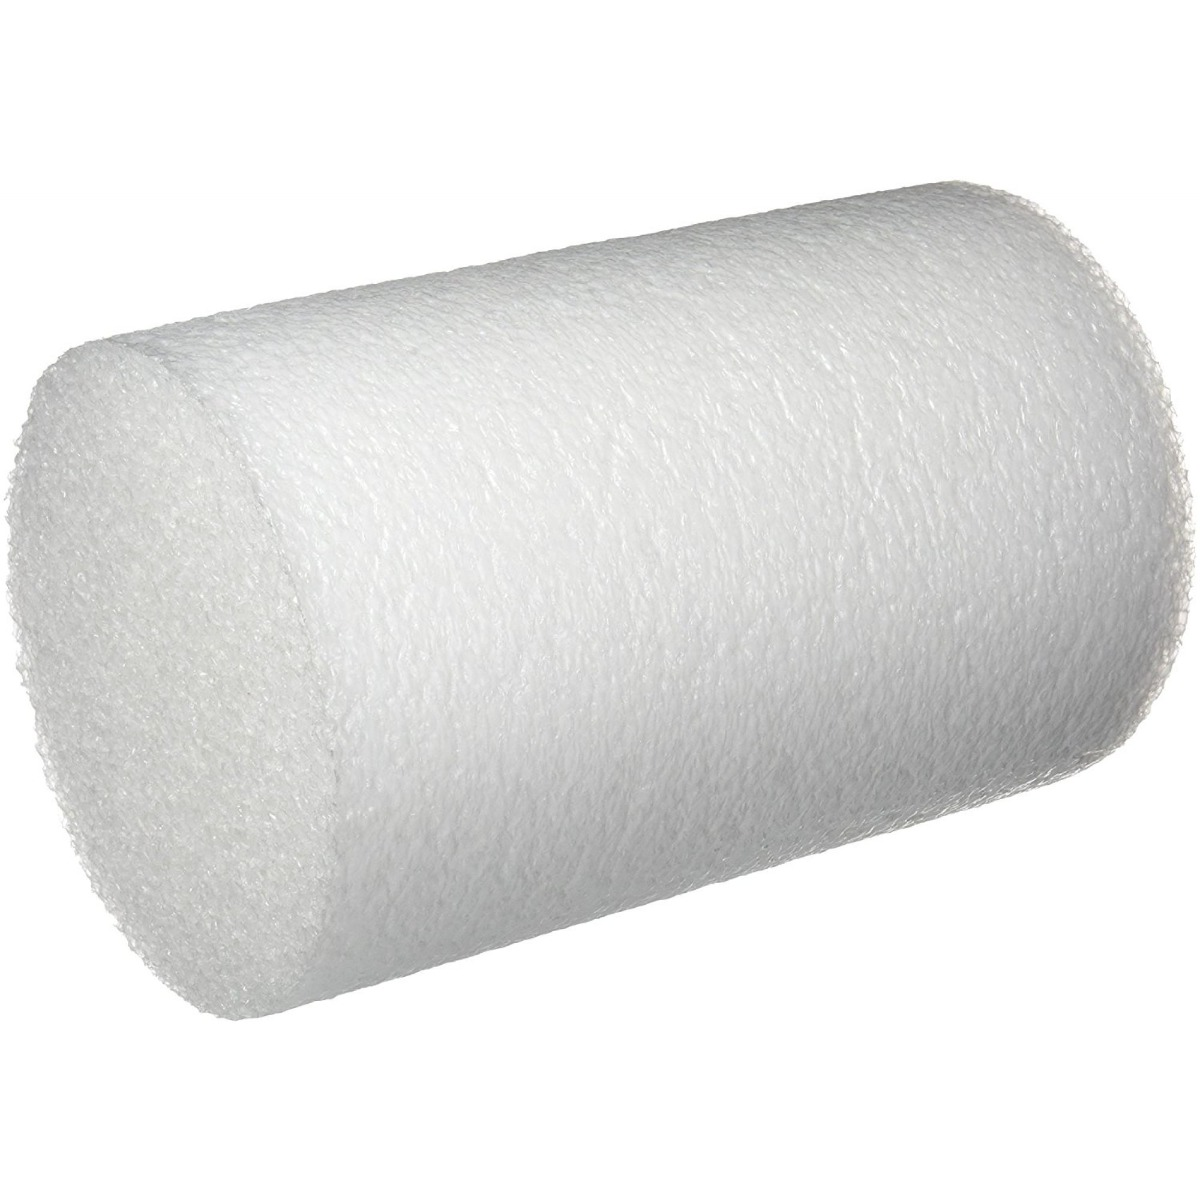 "Sammons Preston Foam Therapy Rolls, 8"" x 12"", Round"